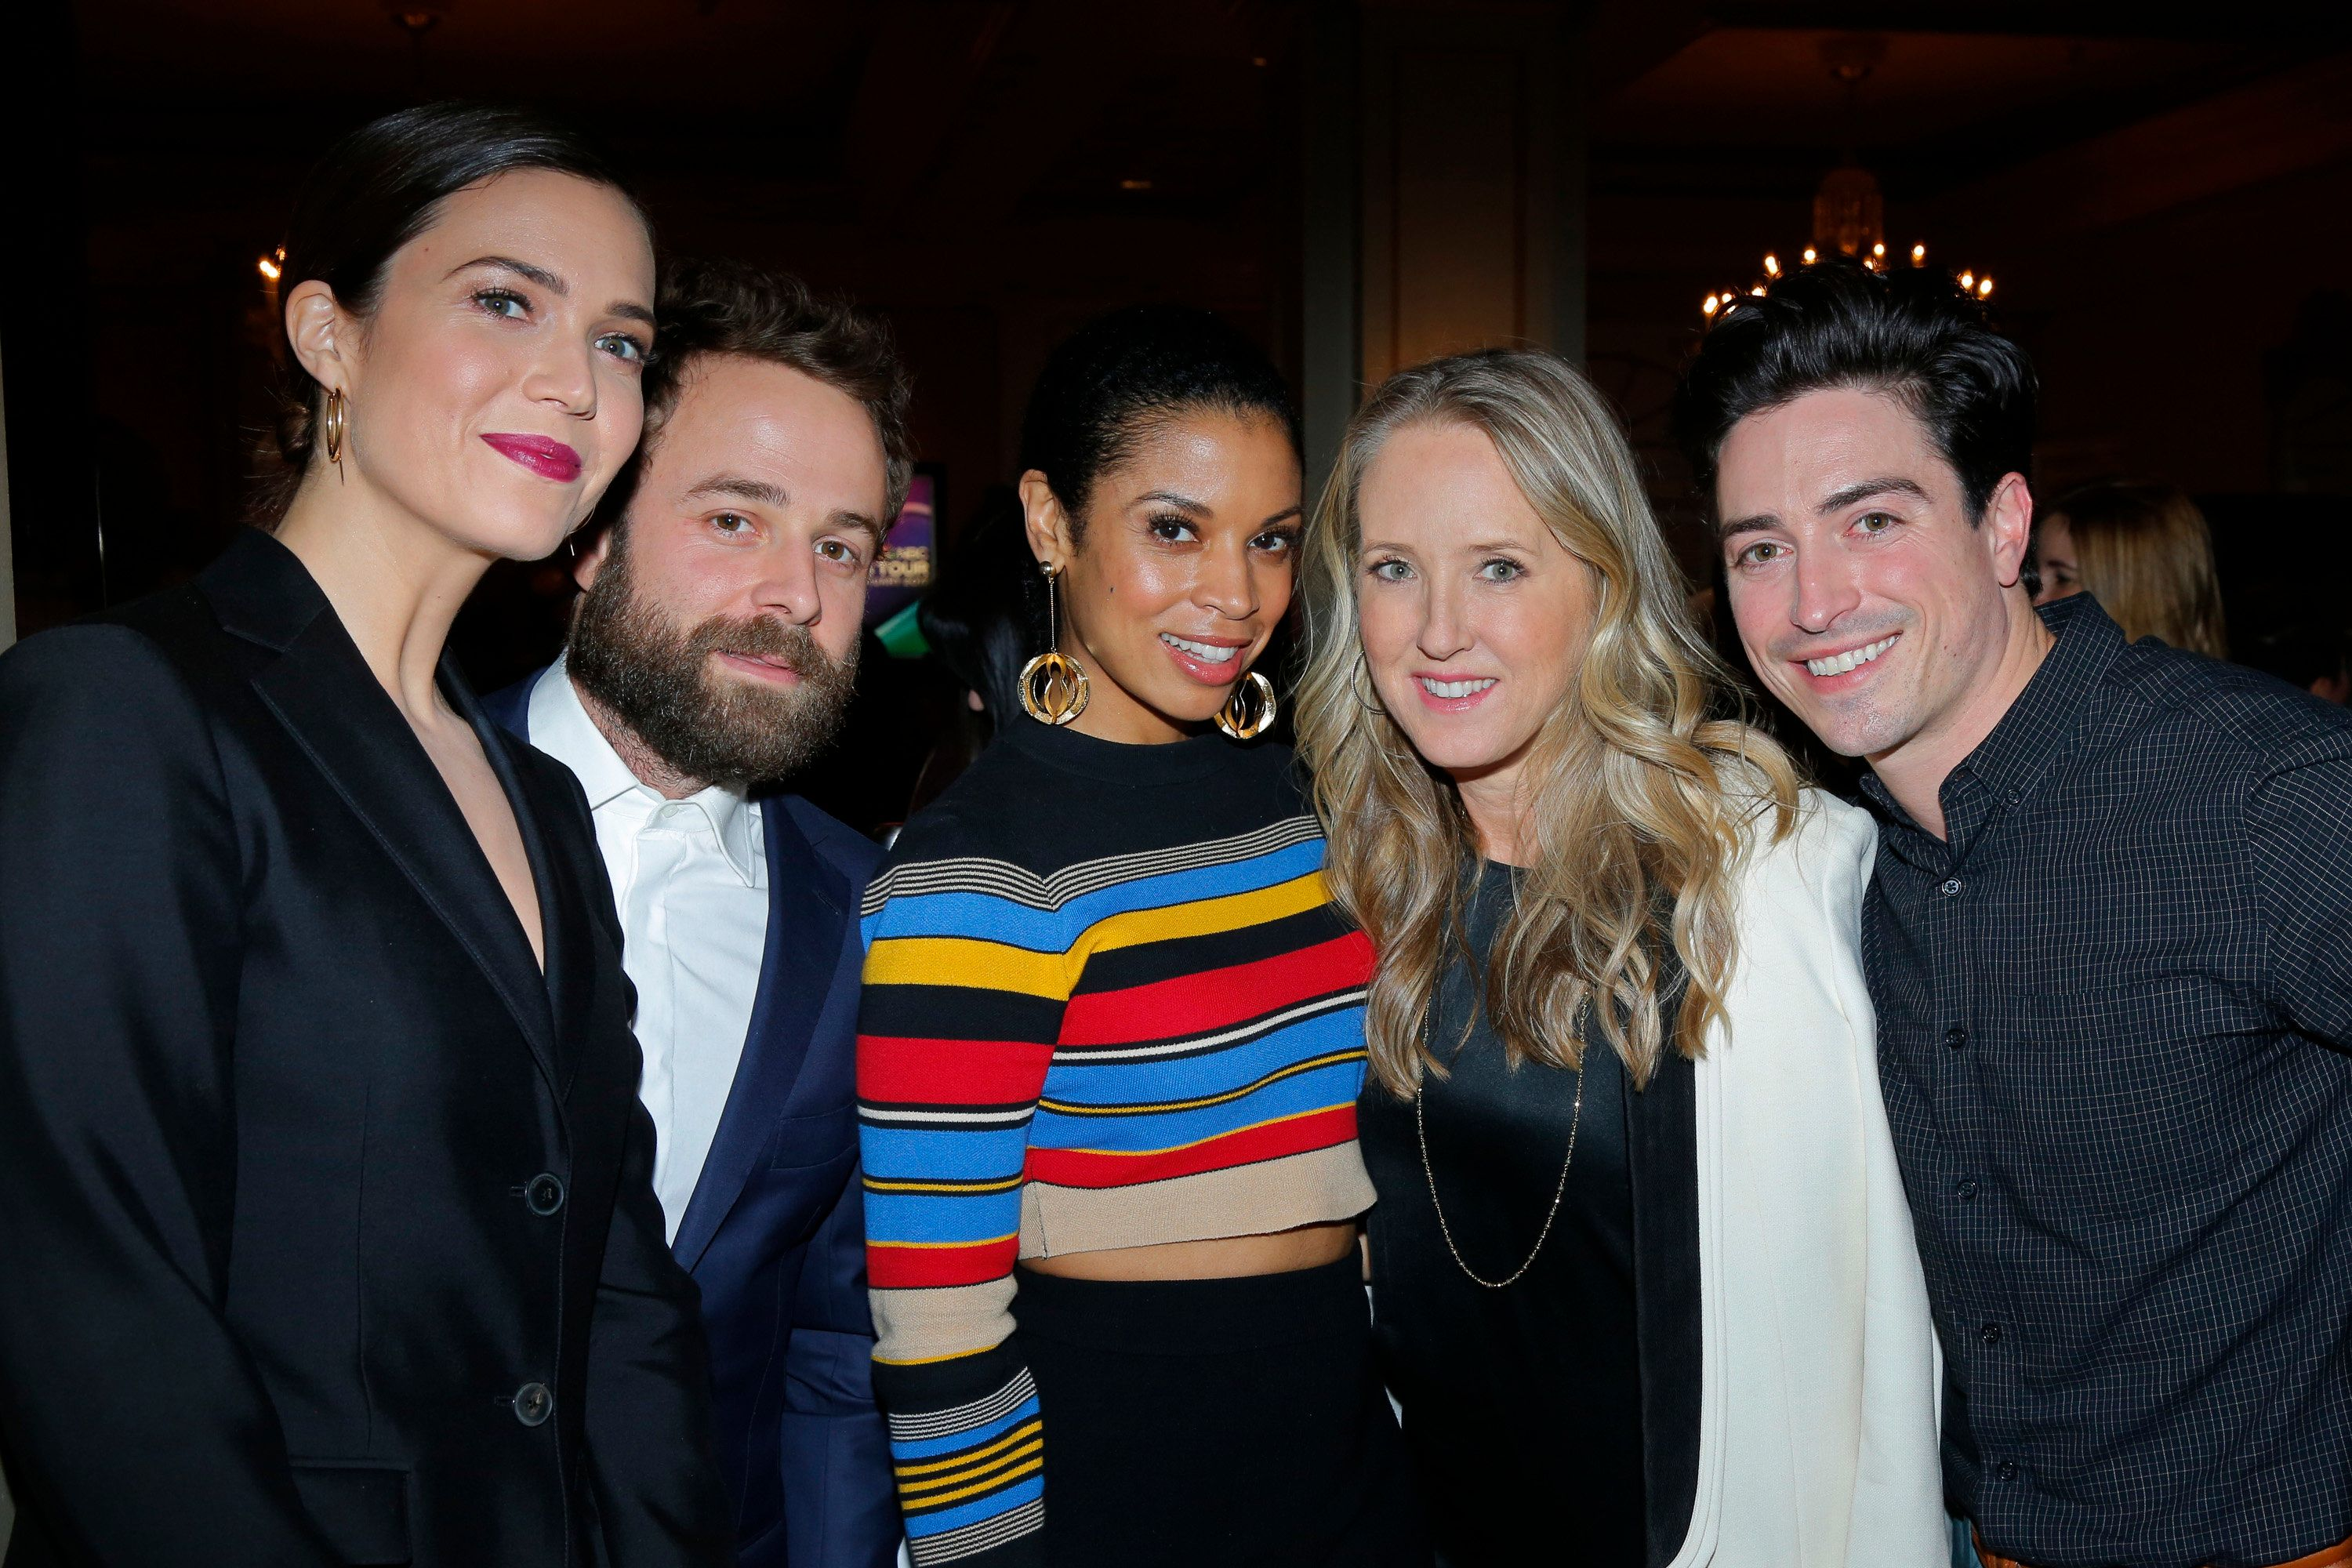 NBCUNIVERSAL EVENTS -- NBCUniversal Press Tour, January 2017 -- NBCUniversal Party -- Pictured: (l-r) Mandy Moore, 'This Is Us'; Taylor Goldsmith, Susan Kelechi Watson, 'This Is Us'; Jennifer Salke, President, NBC Entertainment; Ben Feldman, 'Superstore' -- (Photo by: Paul Drinkwater/NBC/NBCU Photo Bank via Getty Images)